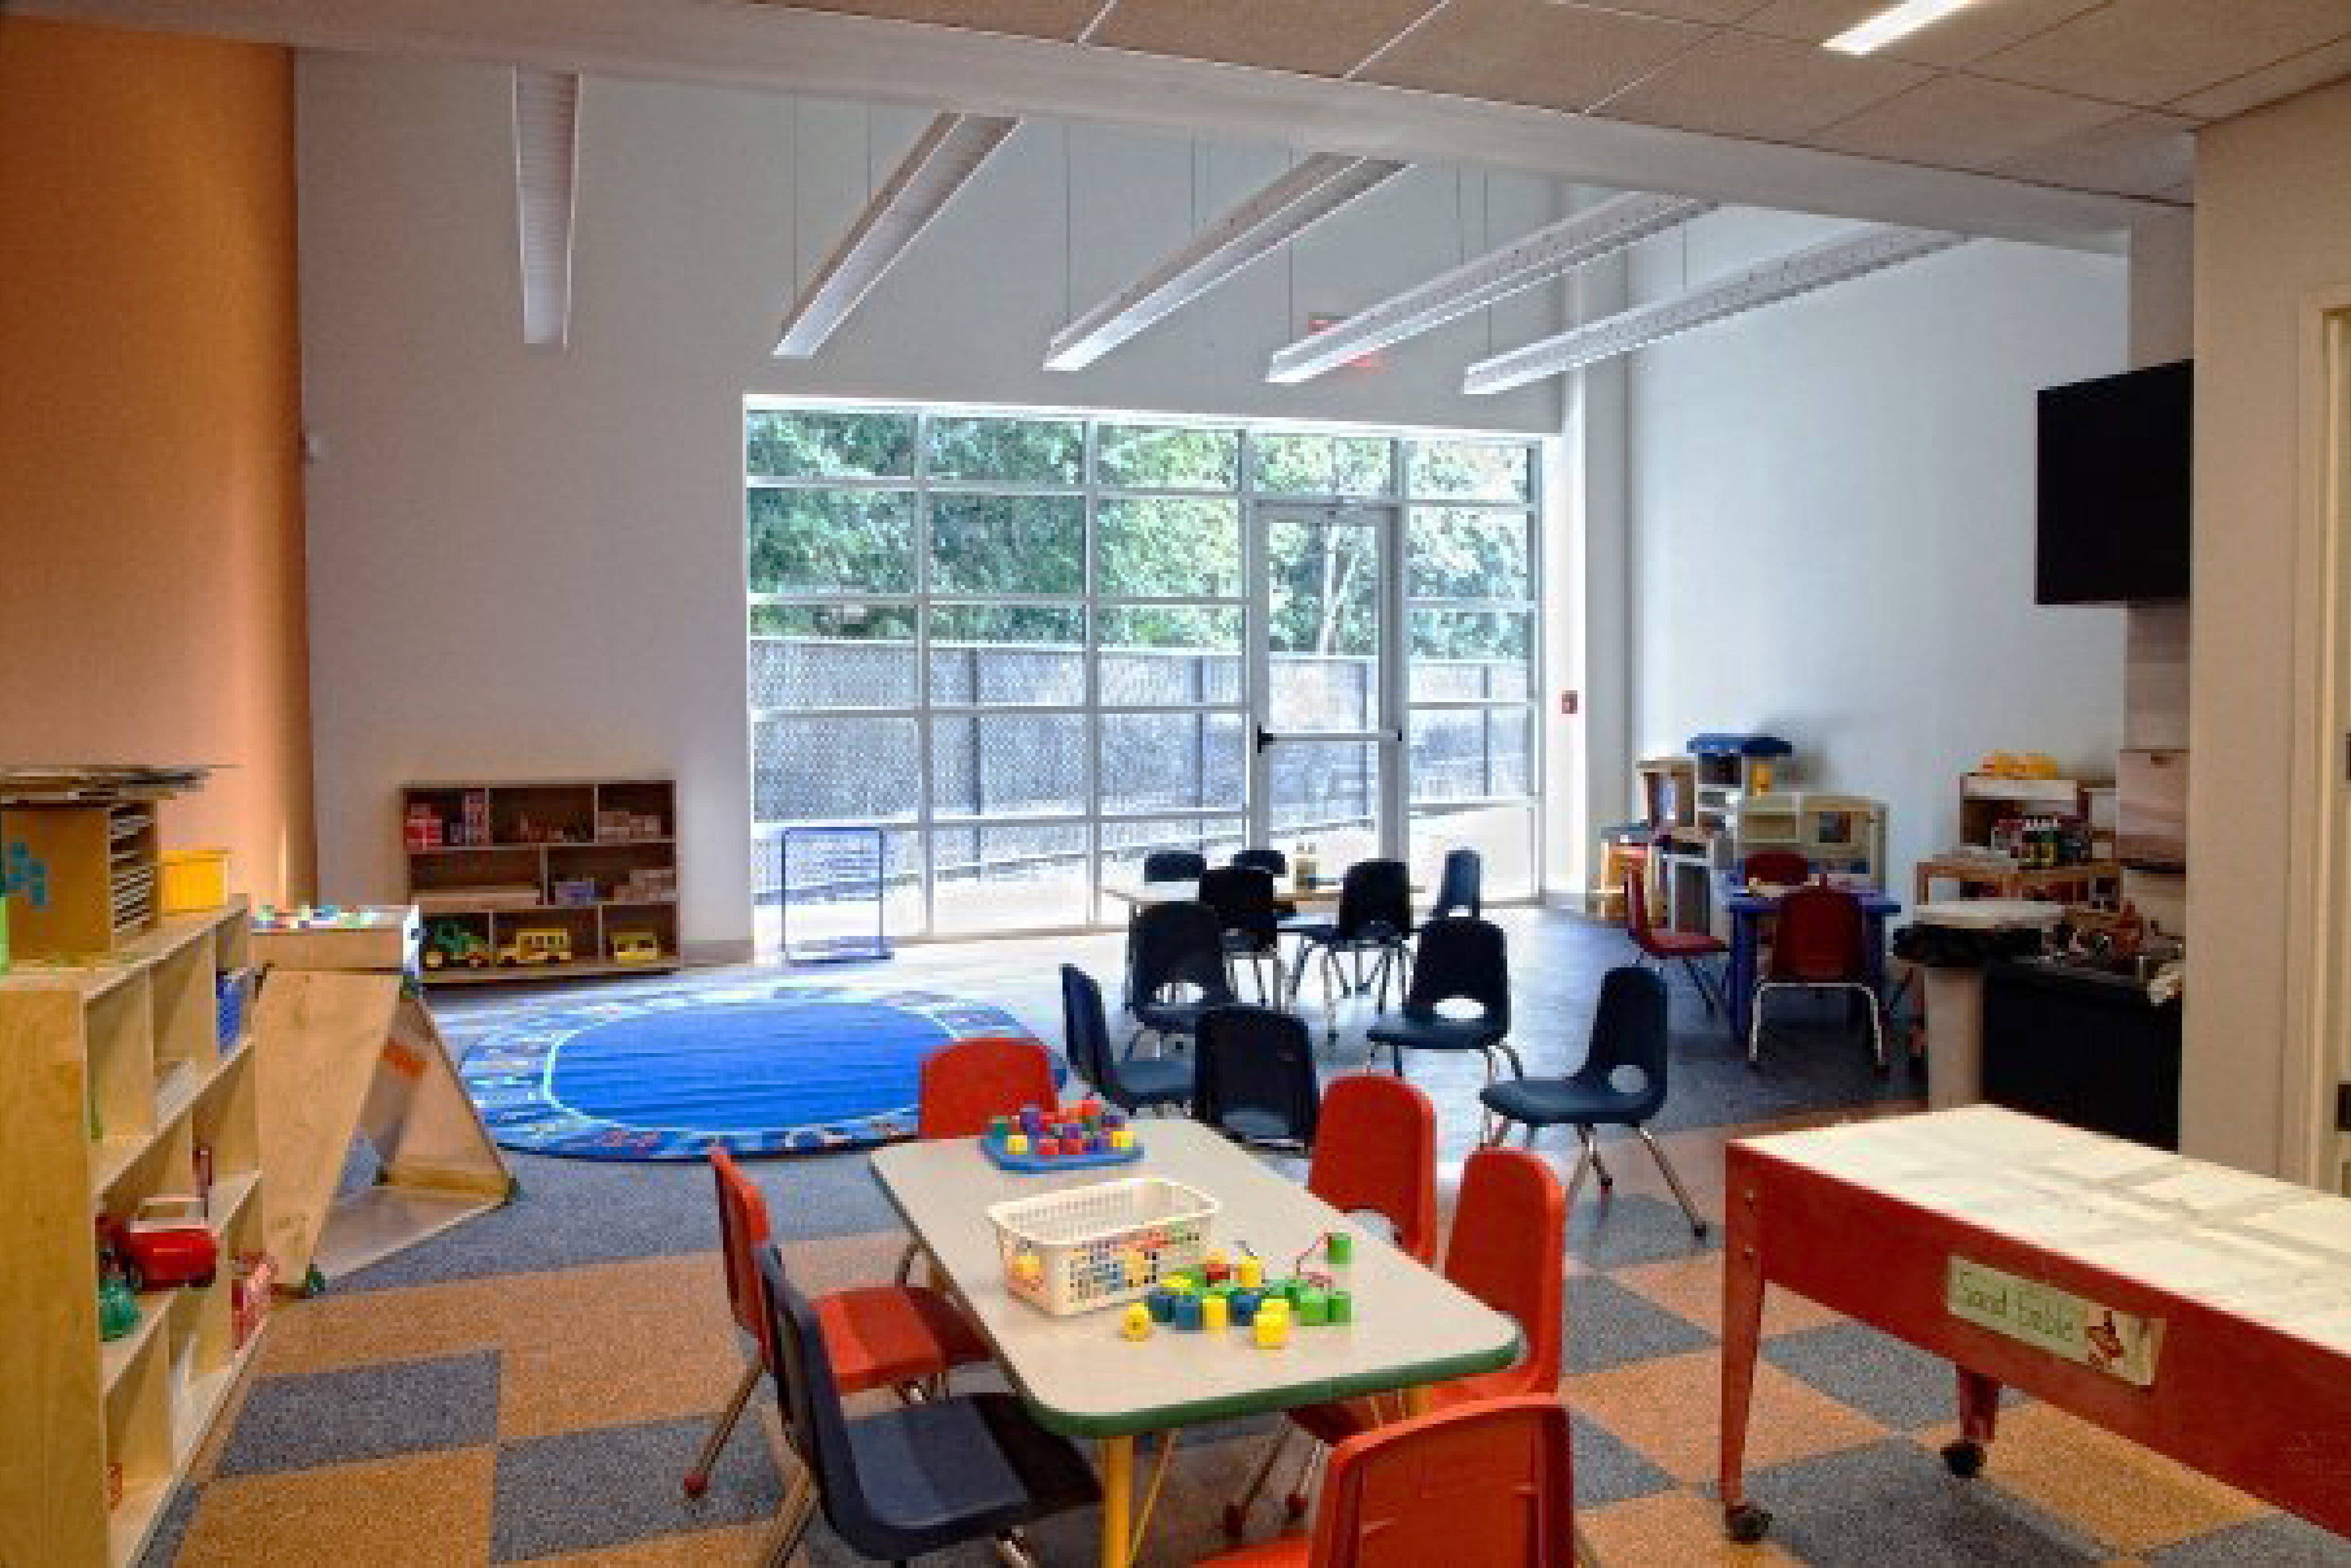 Ostrow Early Childhood Center